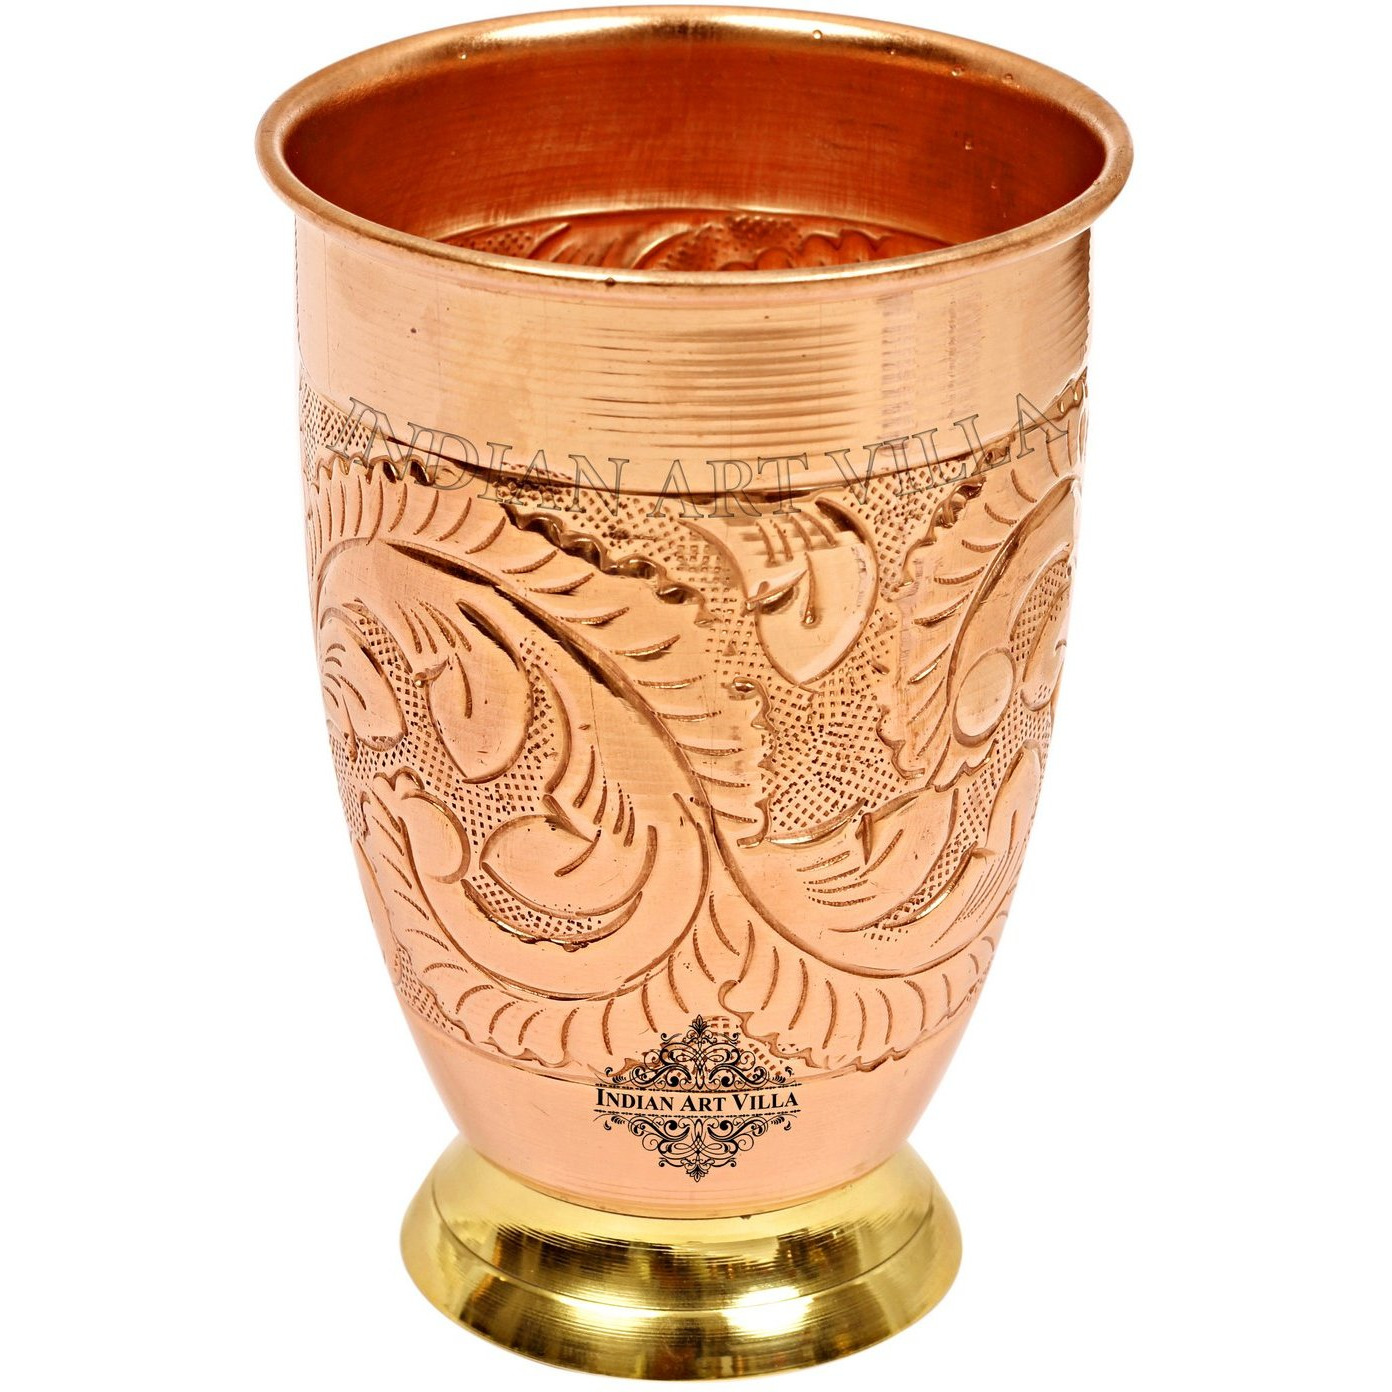 IndianArtVilla Copper Embossed Design Glass Tumbler With Brass Bottom 15 Oz